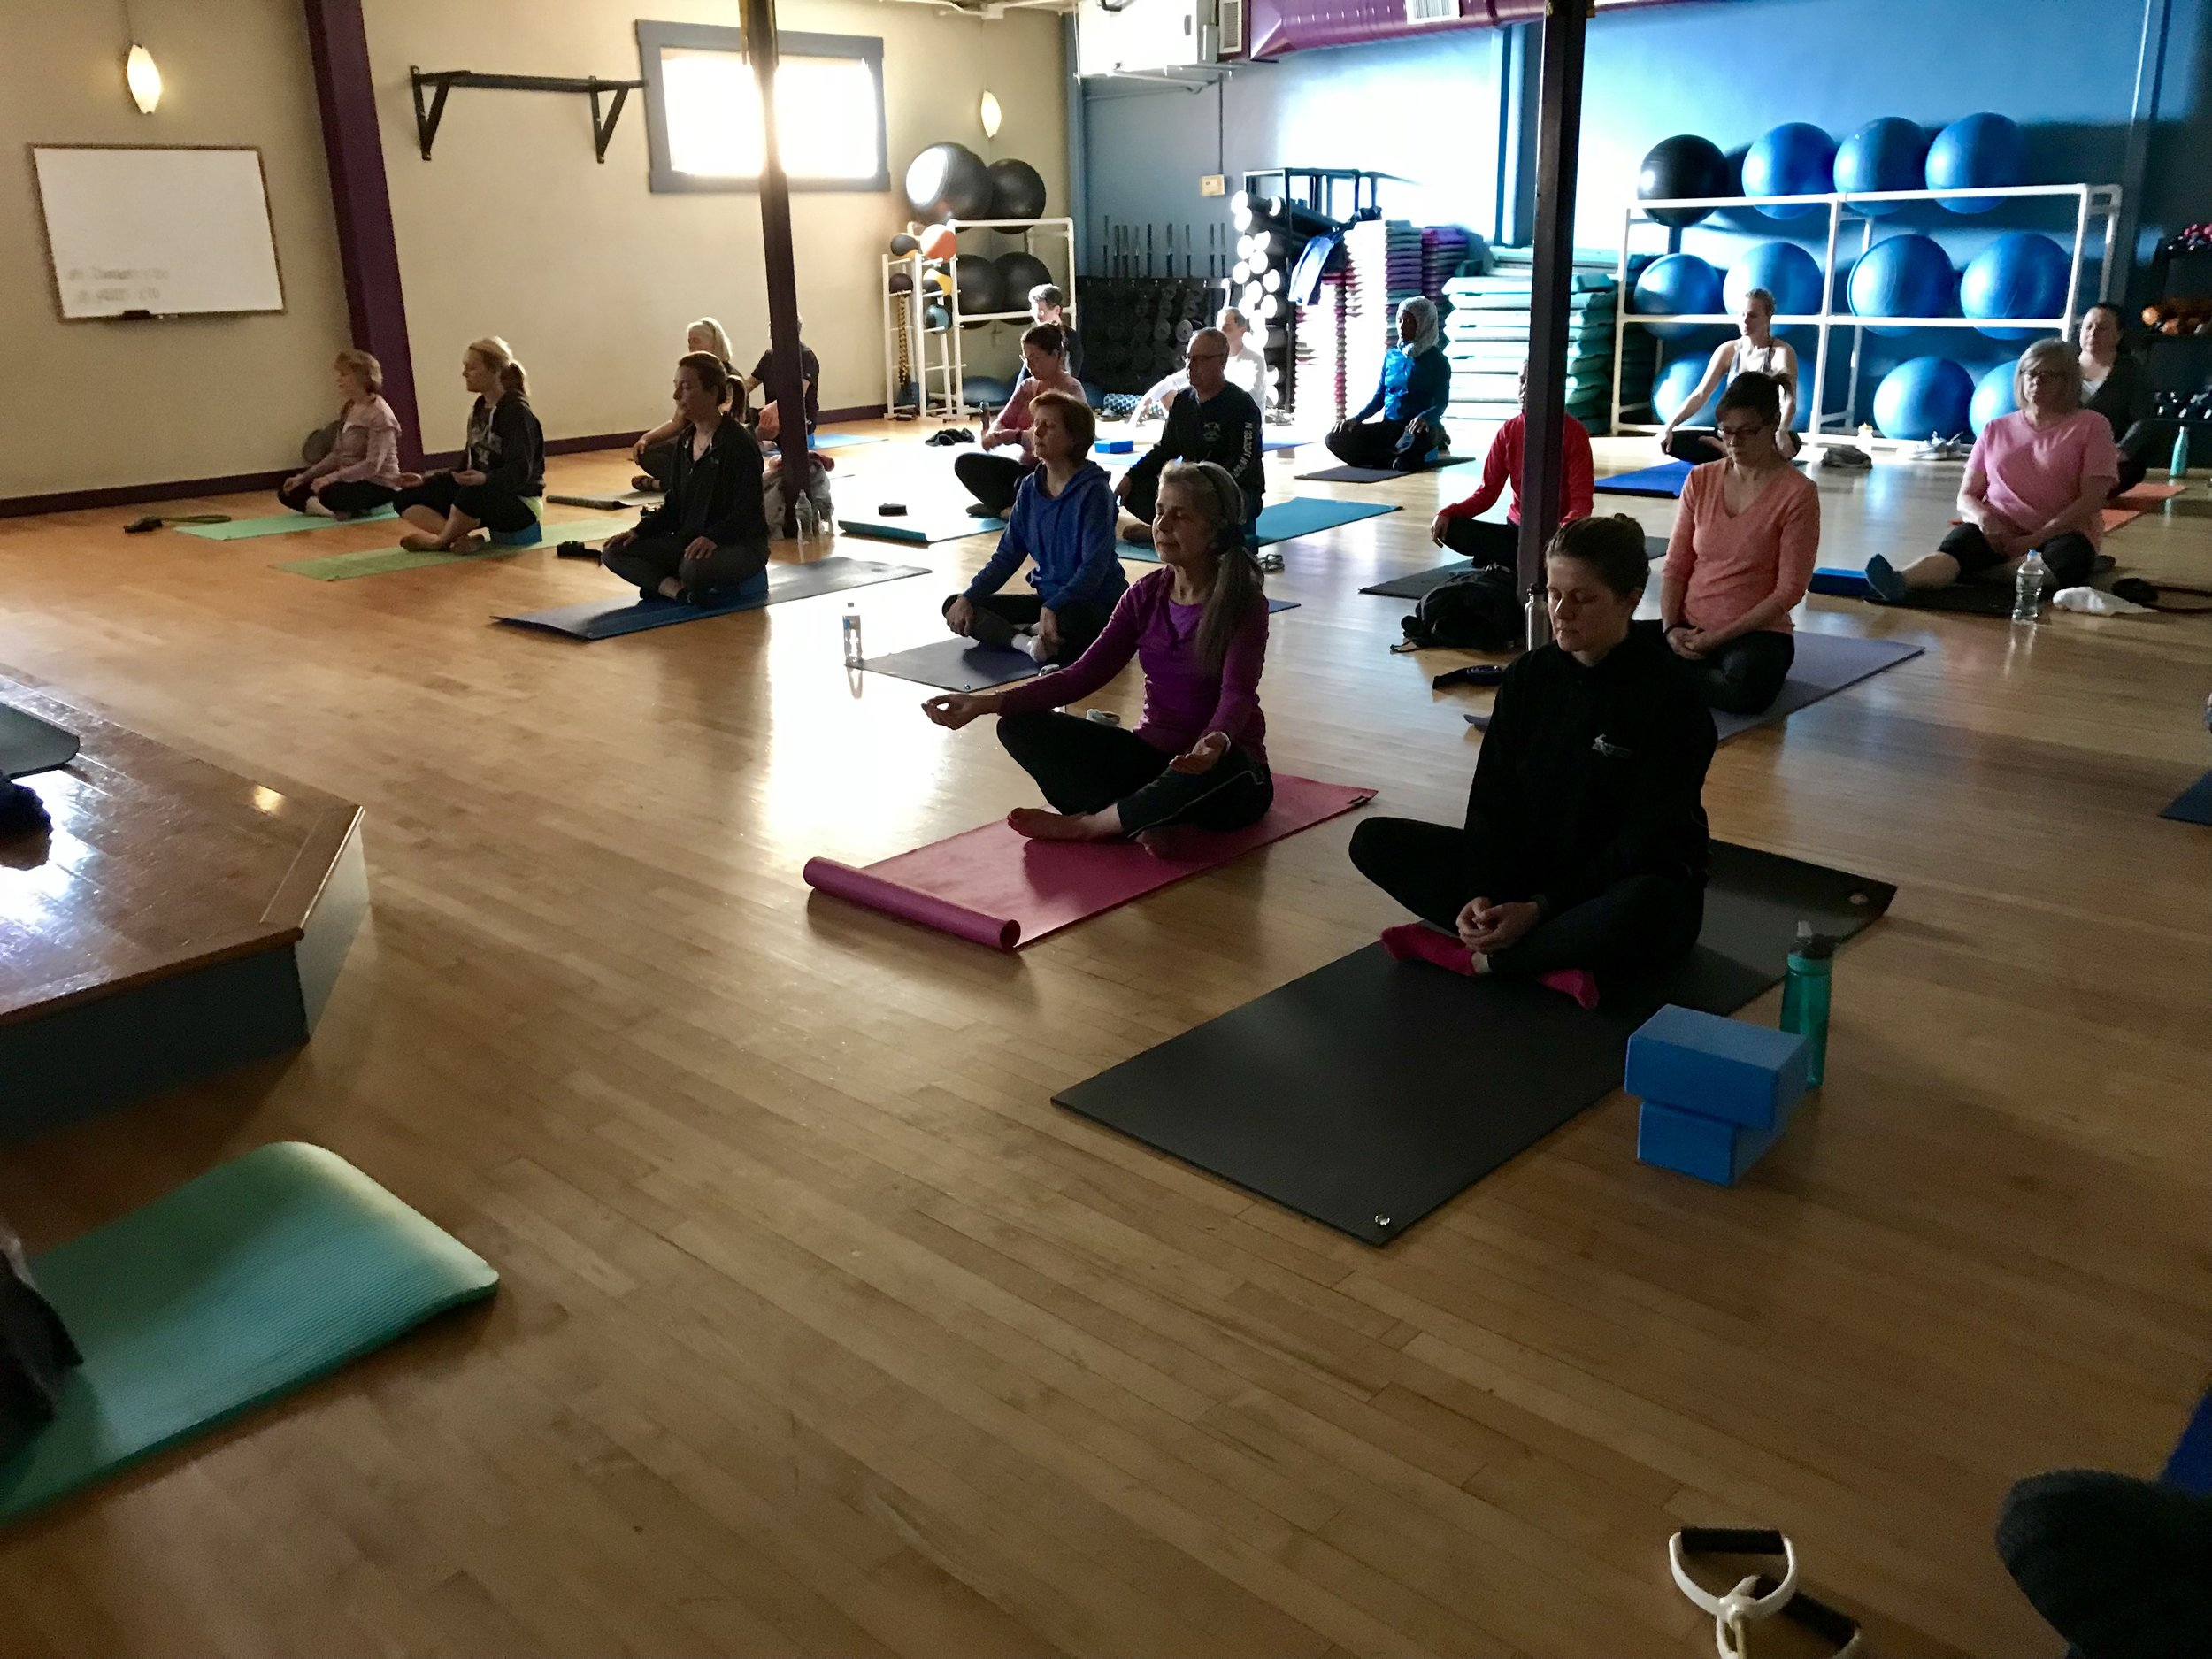 Finding a comfortable seat for each student's body to breathe in this moment and breathe out the rest of the day at the start of one of Daniella's slow flow classes.